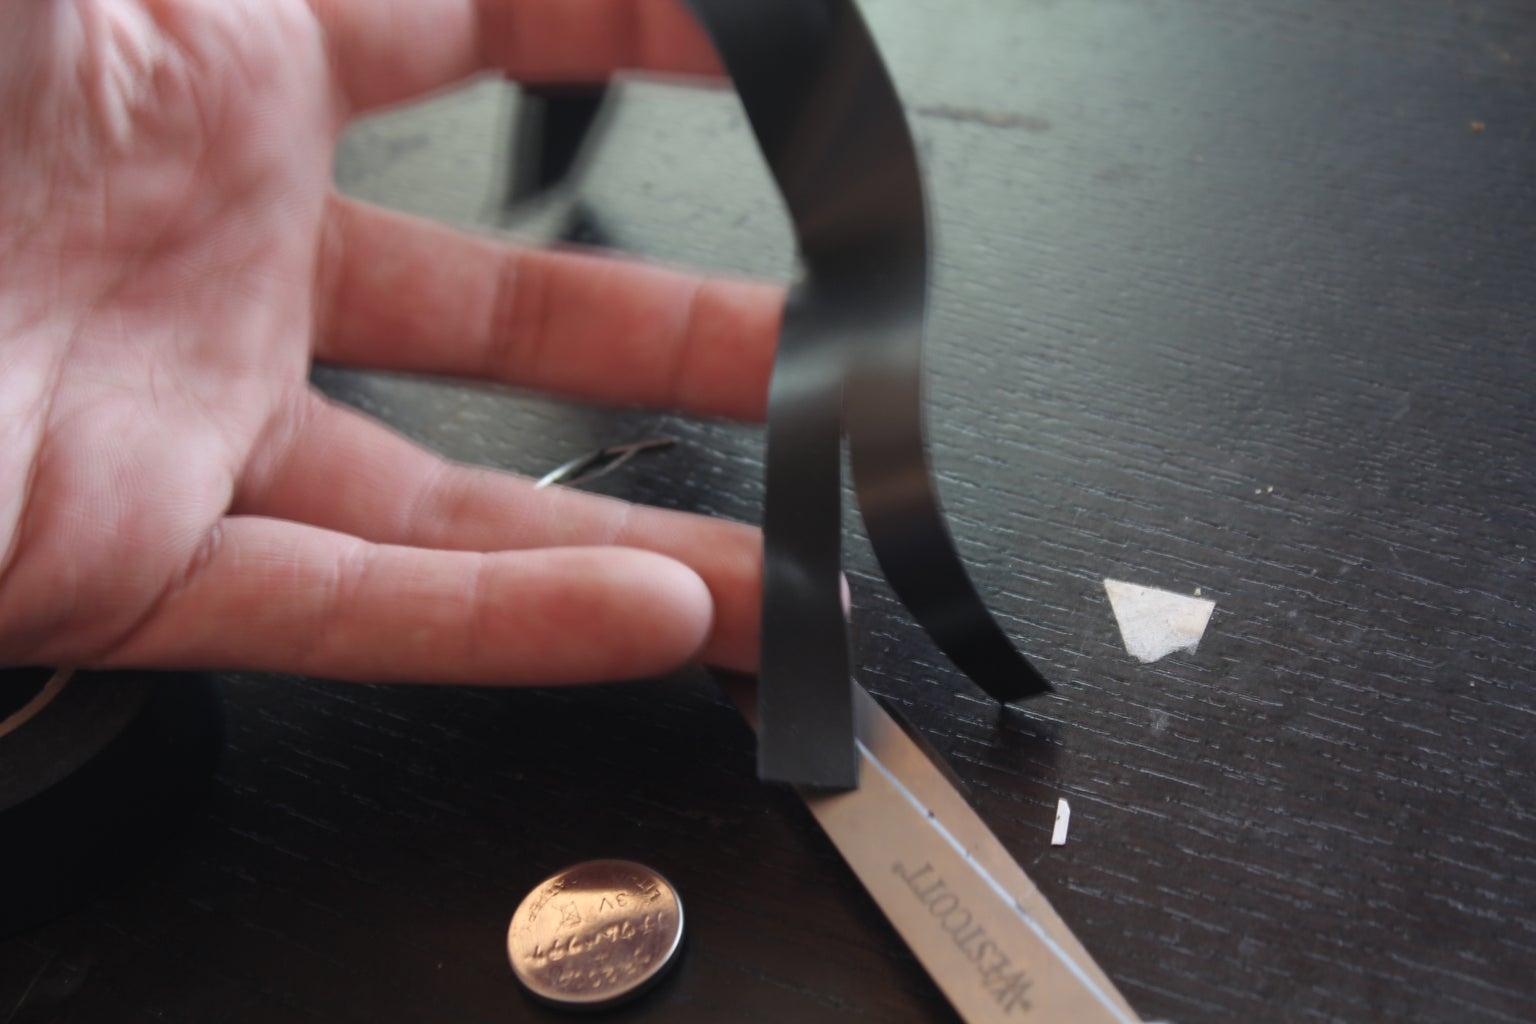 Wrap the Coin Battery W/Electrical Tape